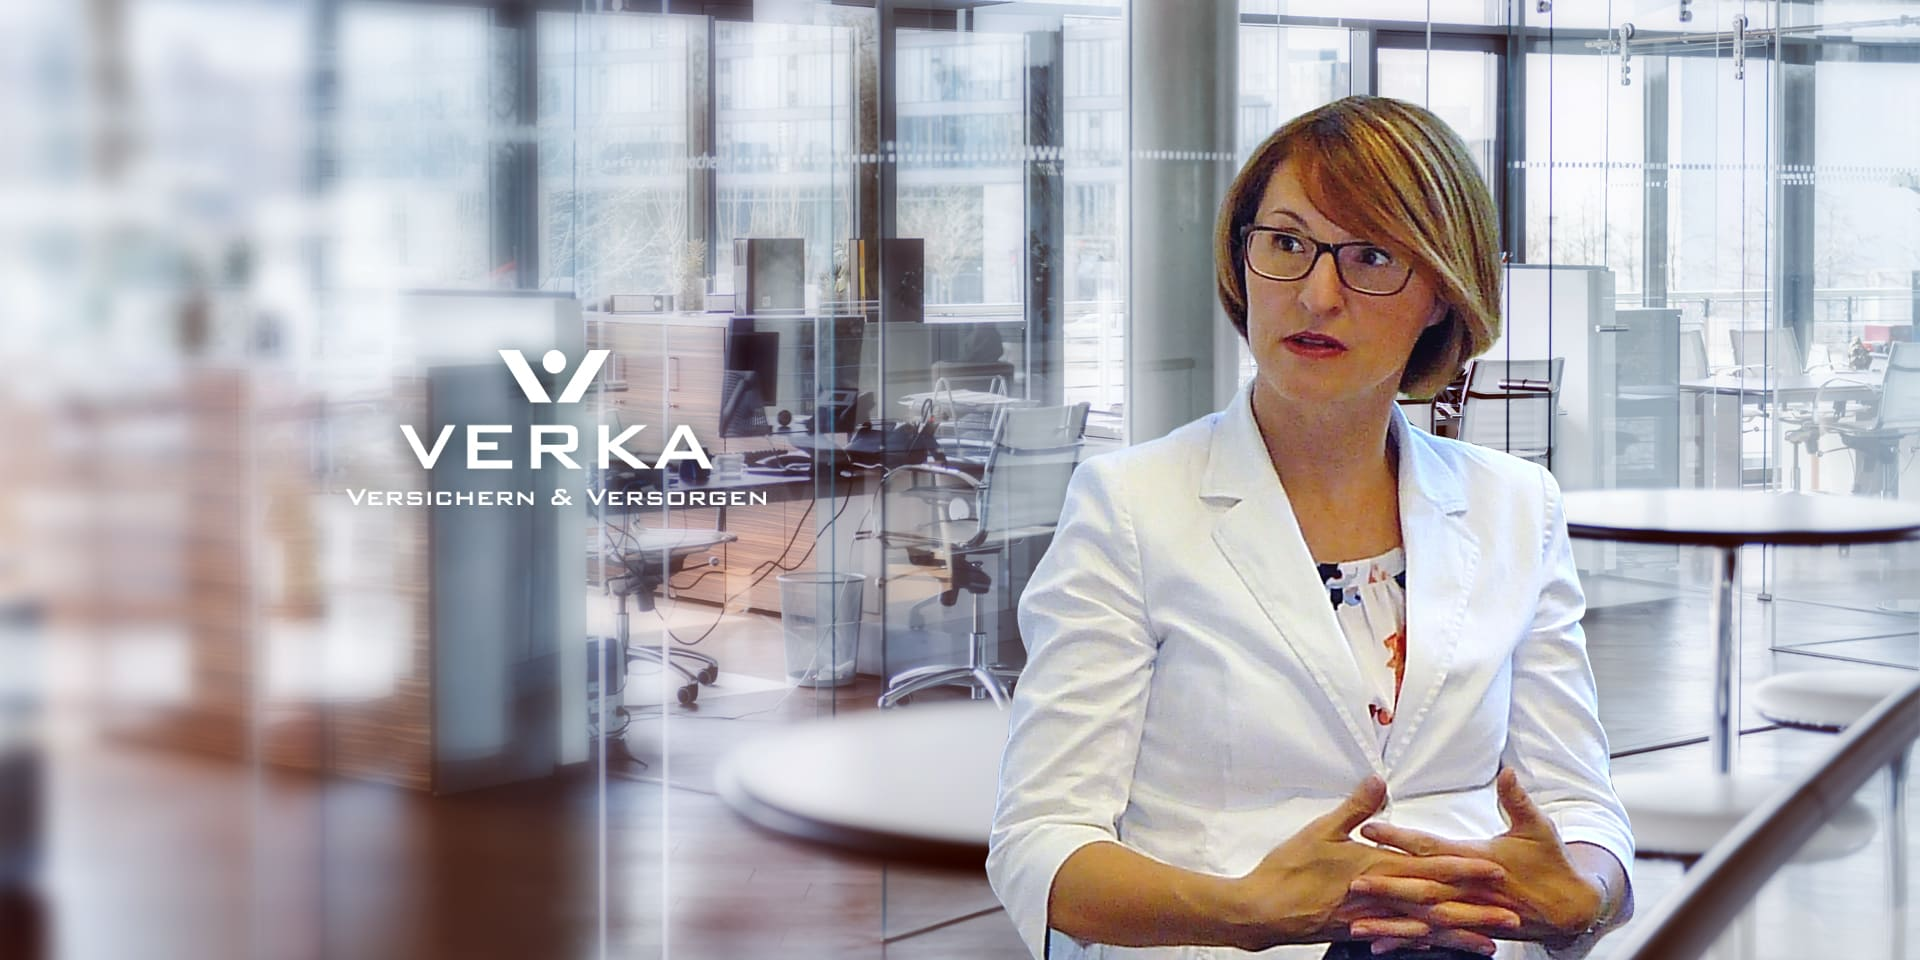 bpm-interview-verka: Portrait Claudia Ibe-Göhler